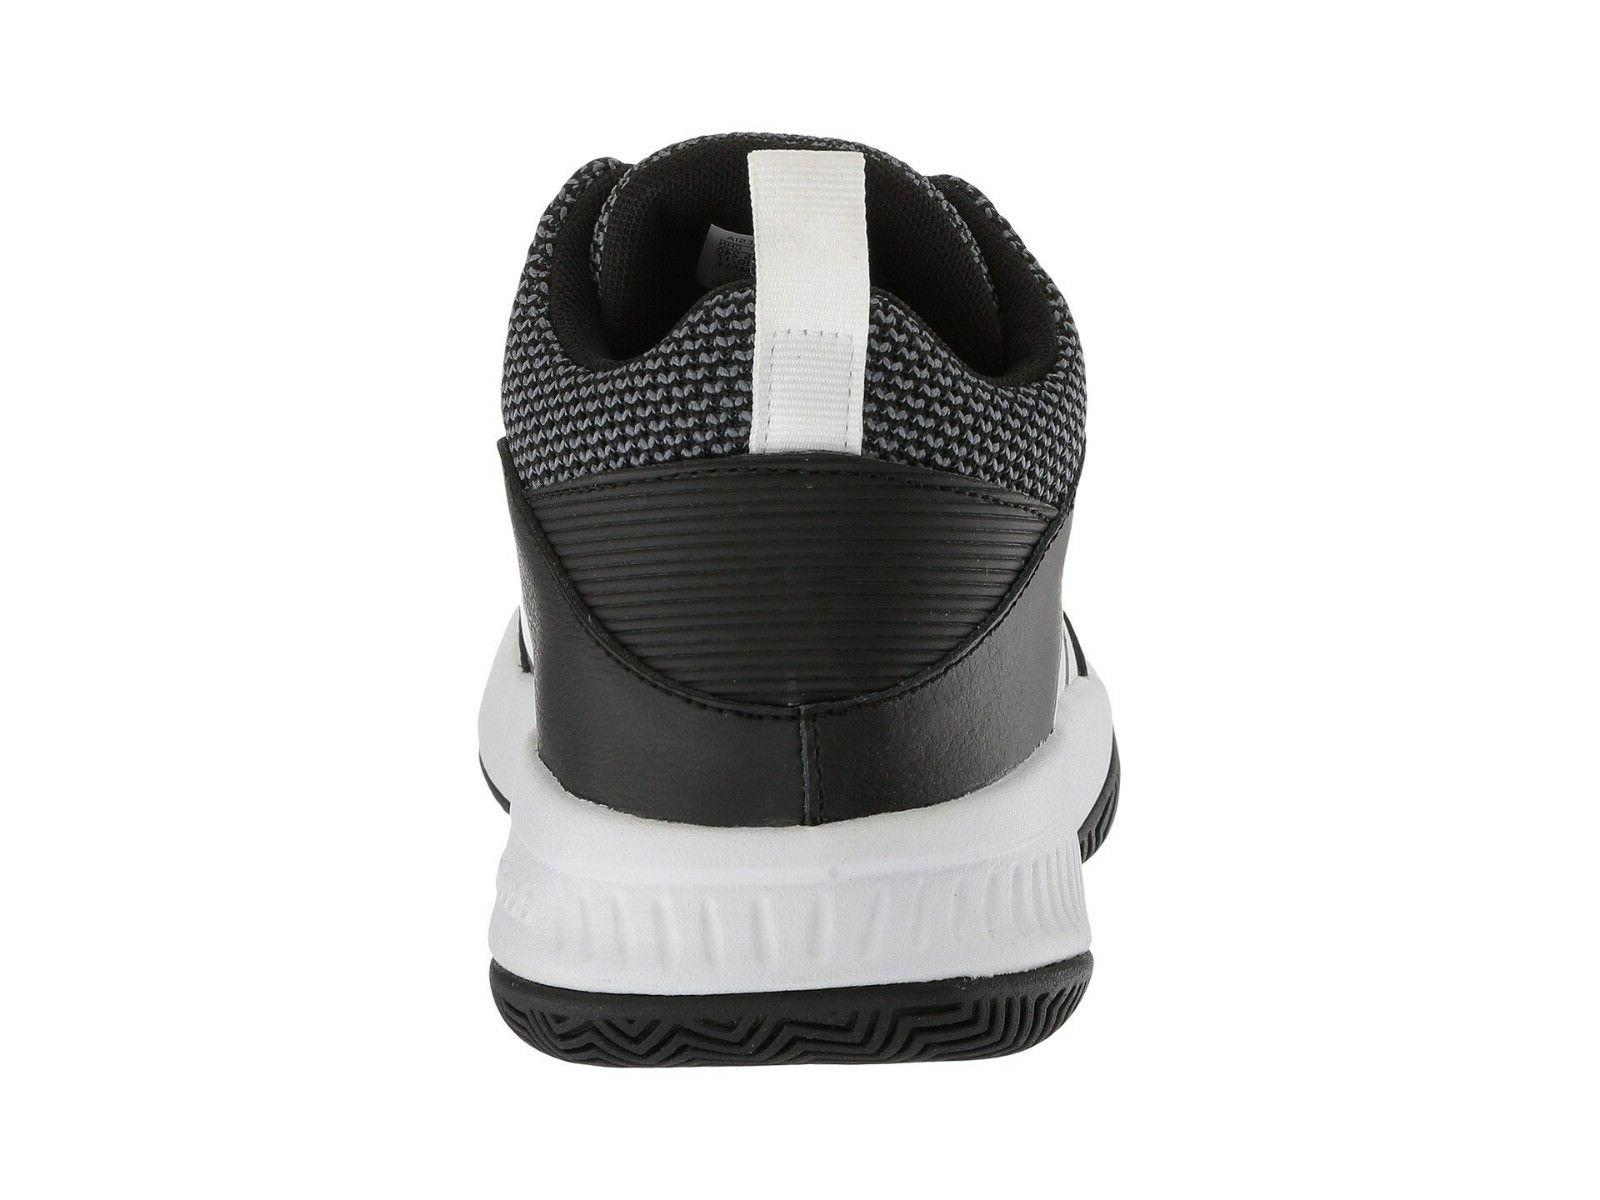 Men Basketball Shoes DA9847 Black White Grey